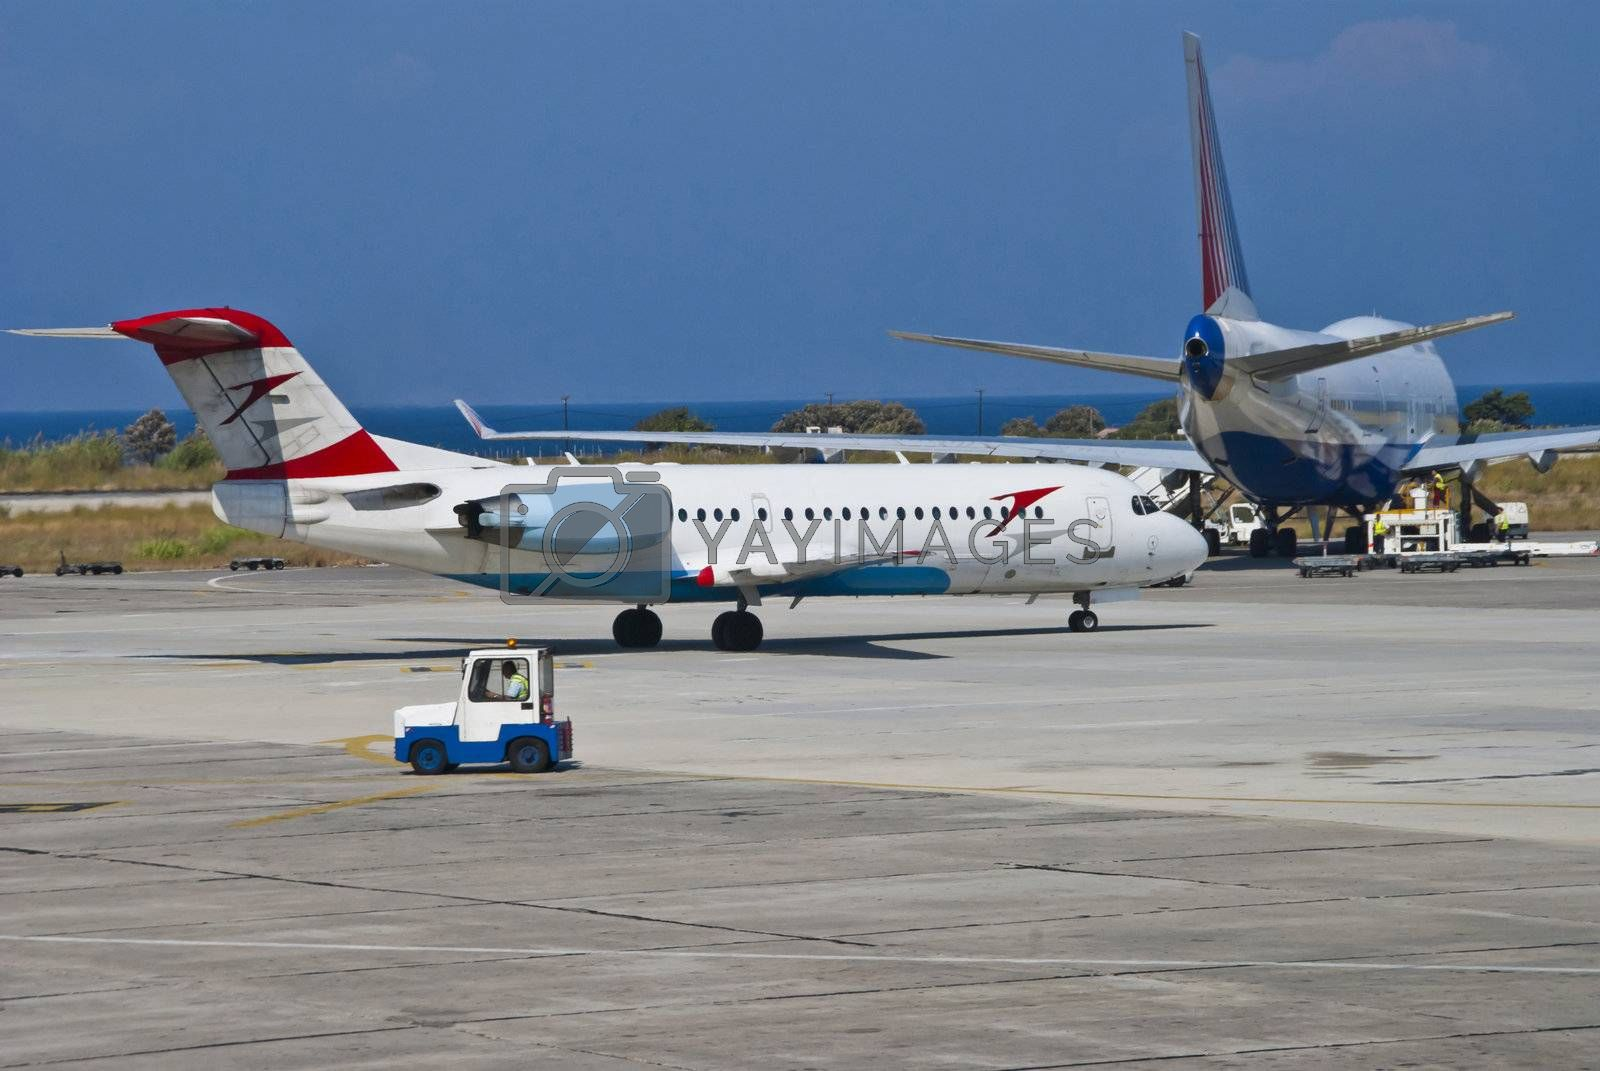 Fokker 70 of Austrian Arrows (Tyrolean Airways) parked at Rhodes airport, picture are shot from the departure hall at Rhodes airport.